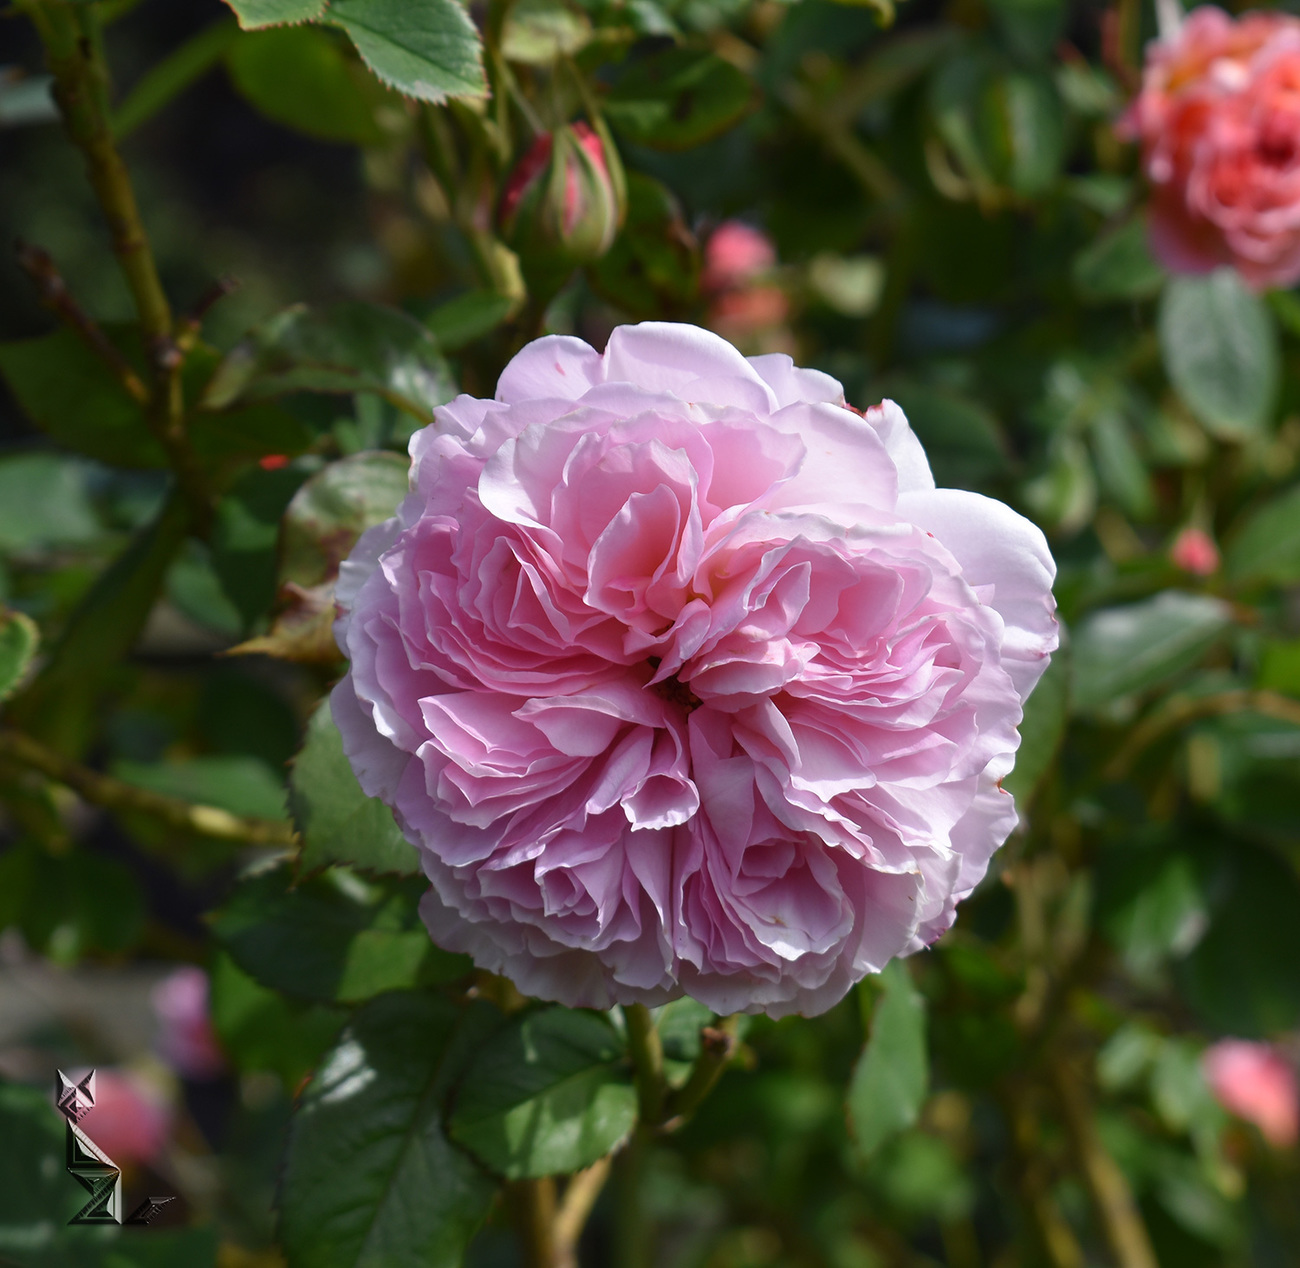 A Shropshire Lad Rose (2) by A_Sunbeam